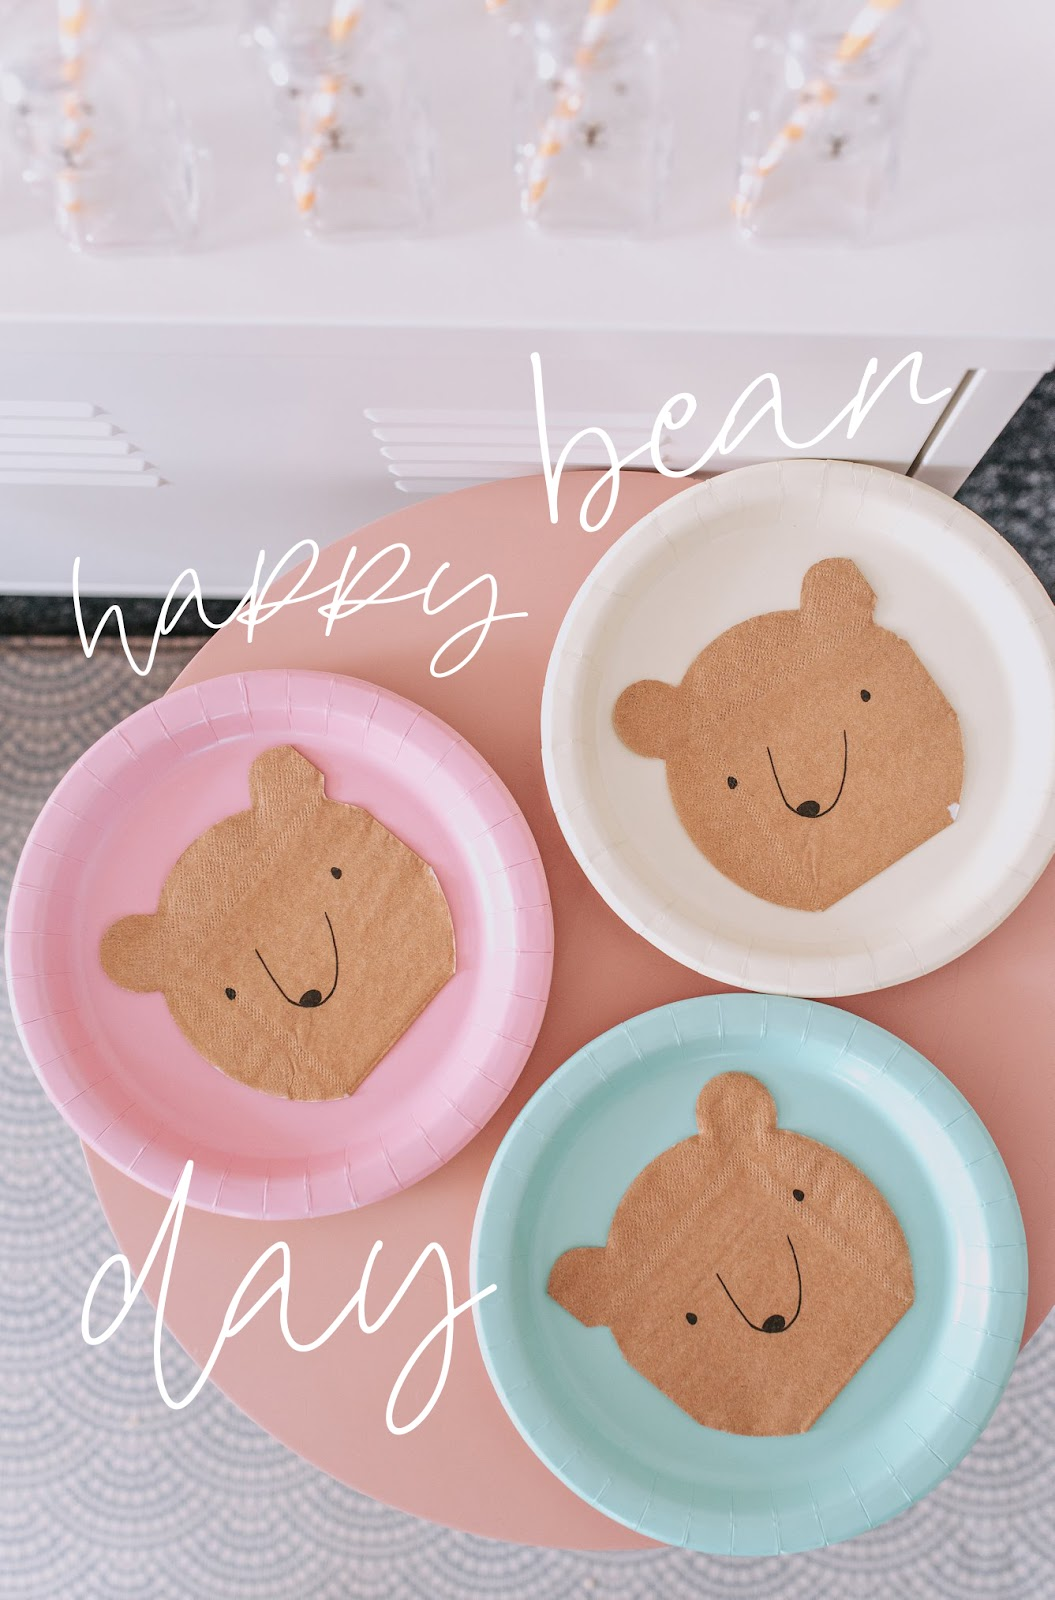 bear and rose gold themed birthday party Meri Meri bear napkins on pastel plates